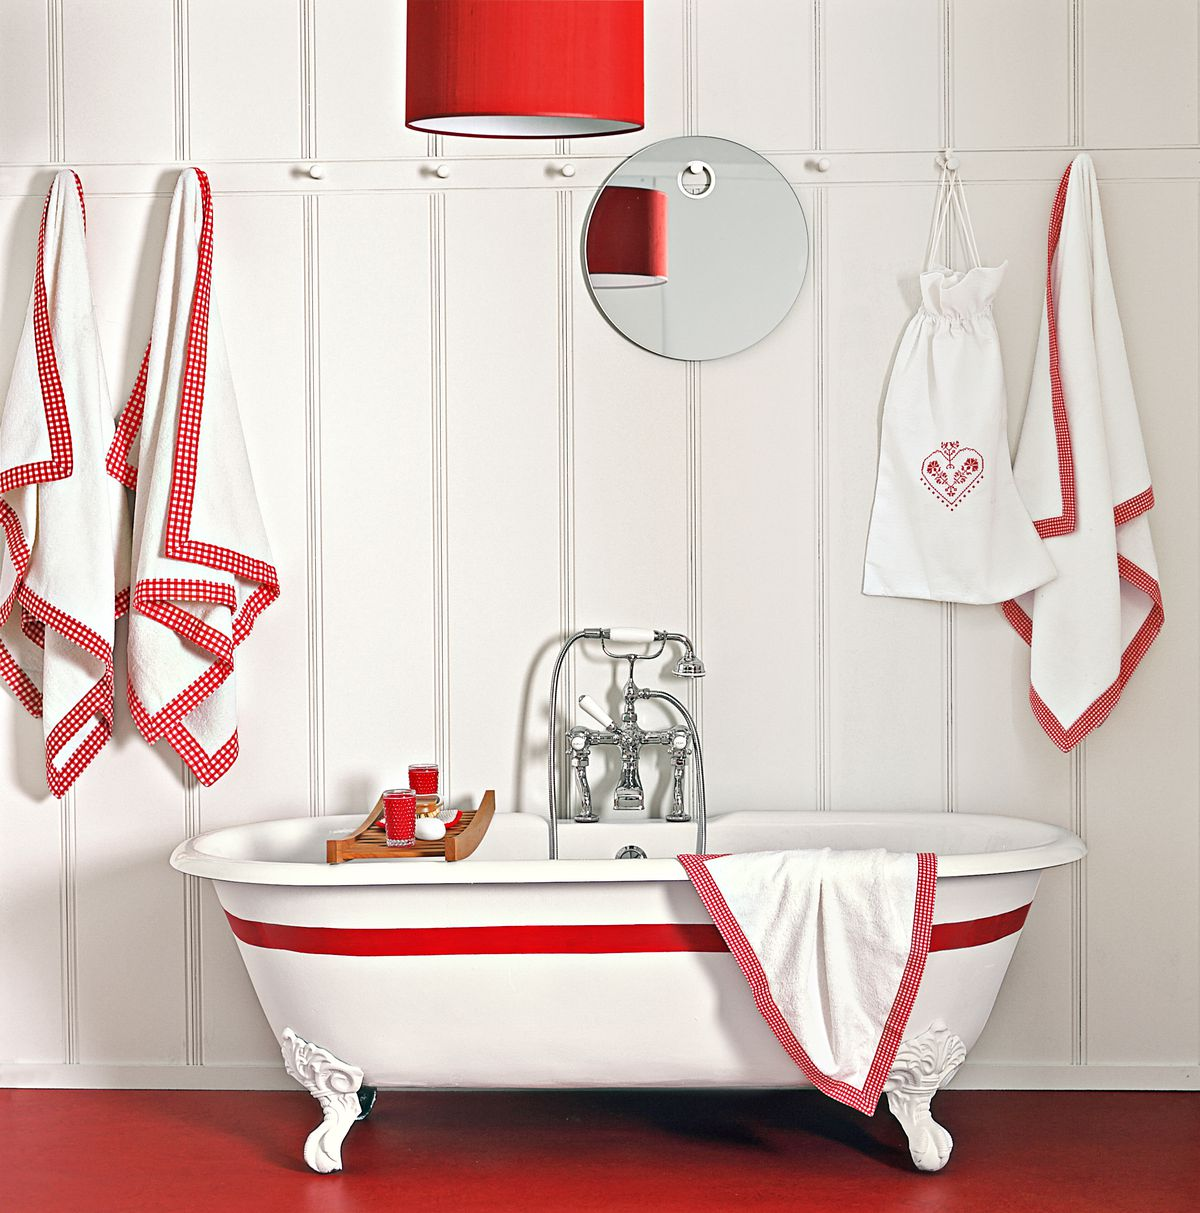 White paneled bathroom walls, red linoleum floors, and white bathtub with red stripe running across it.